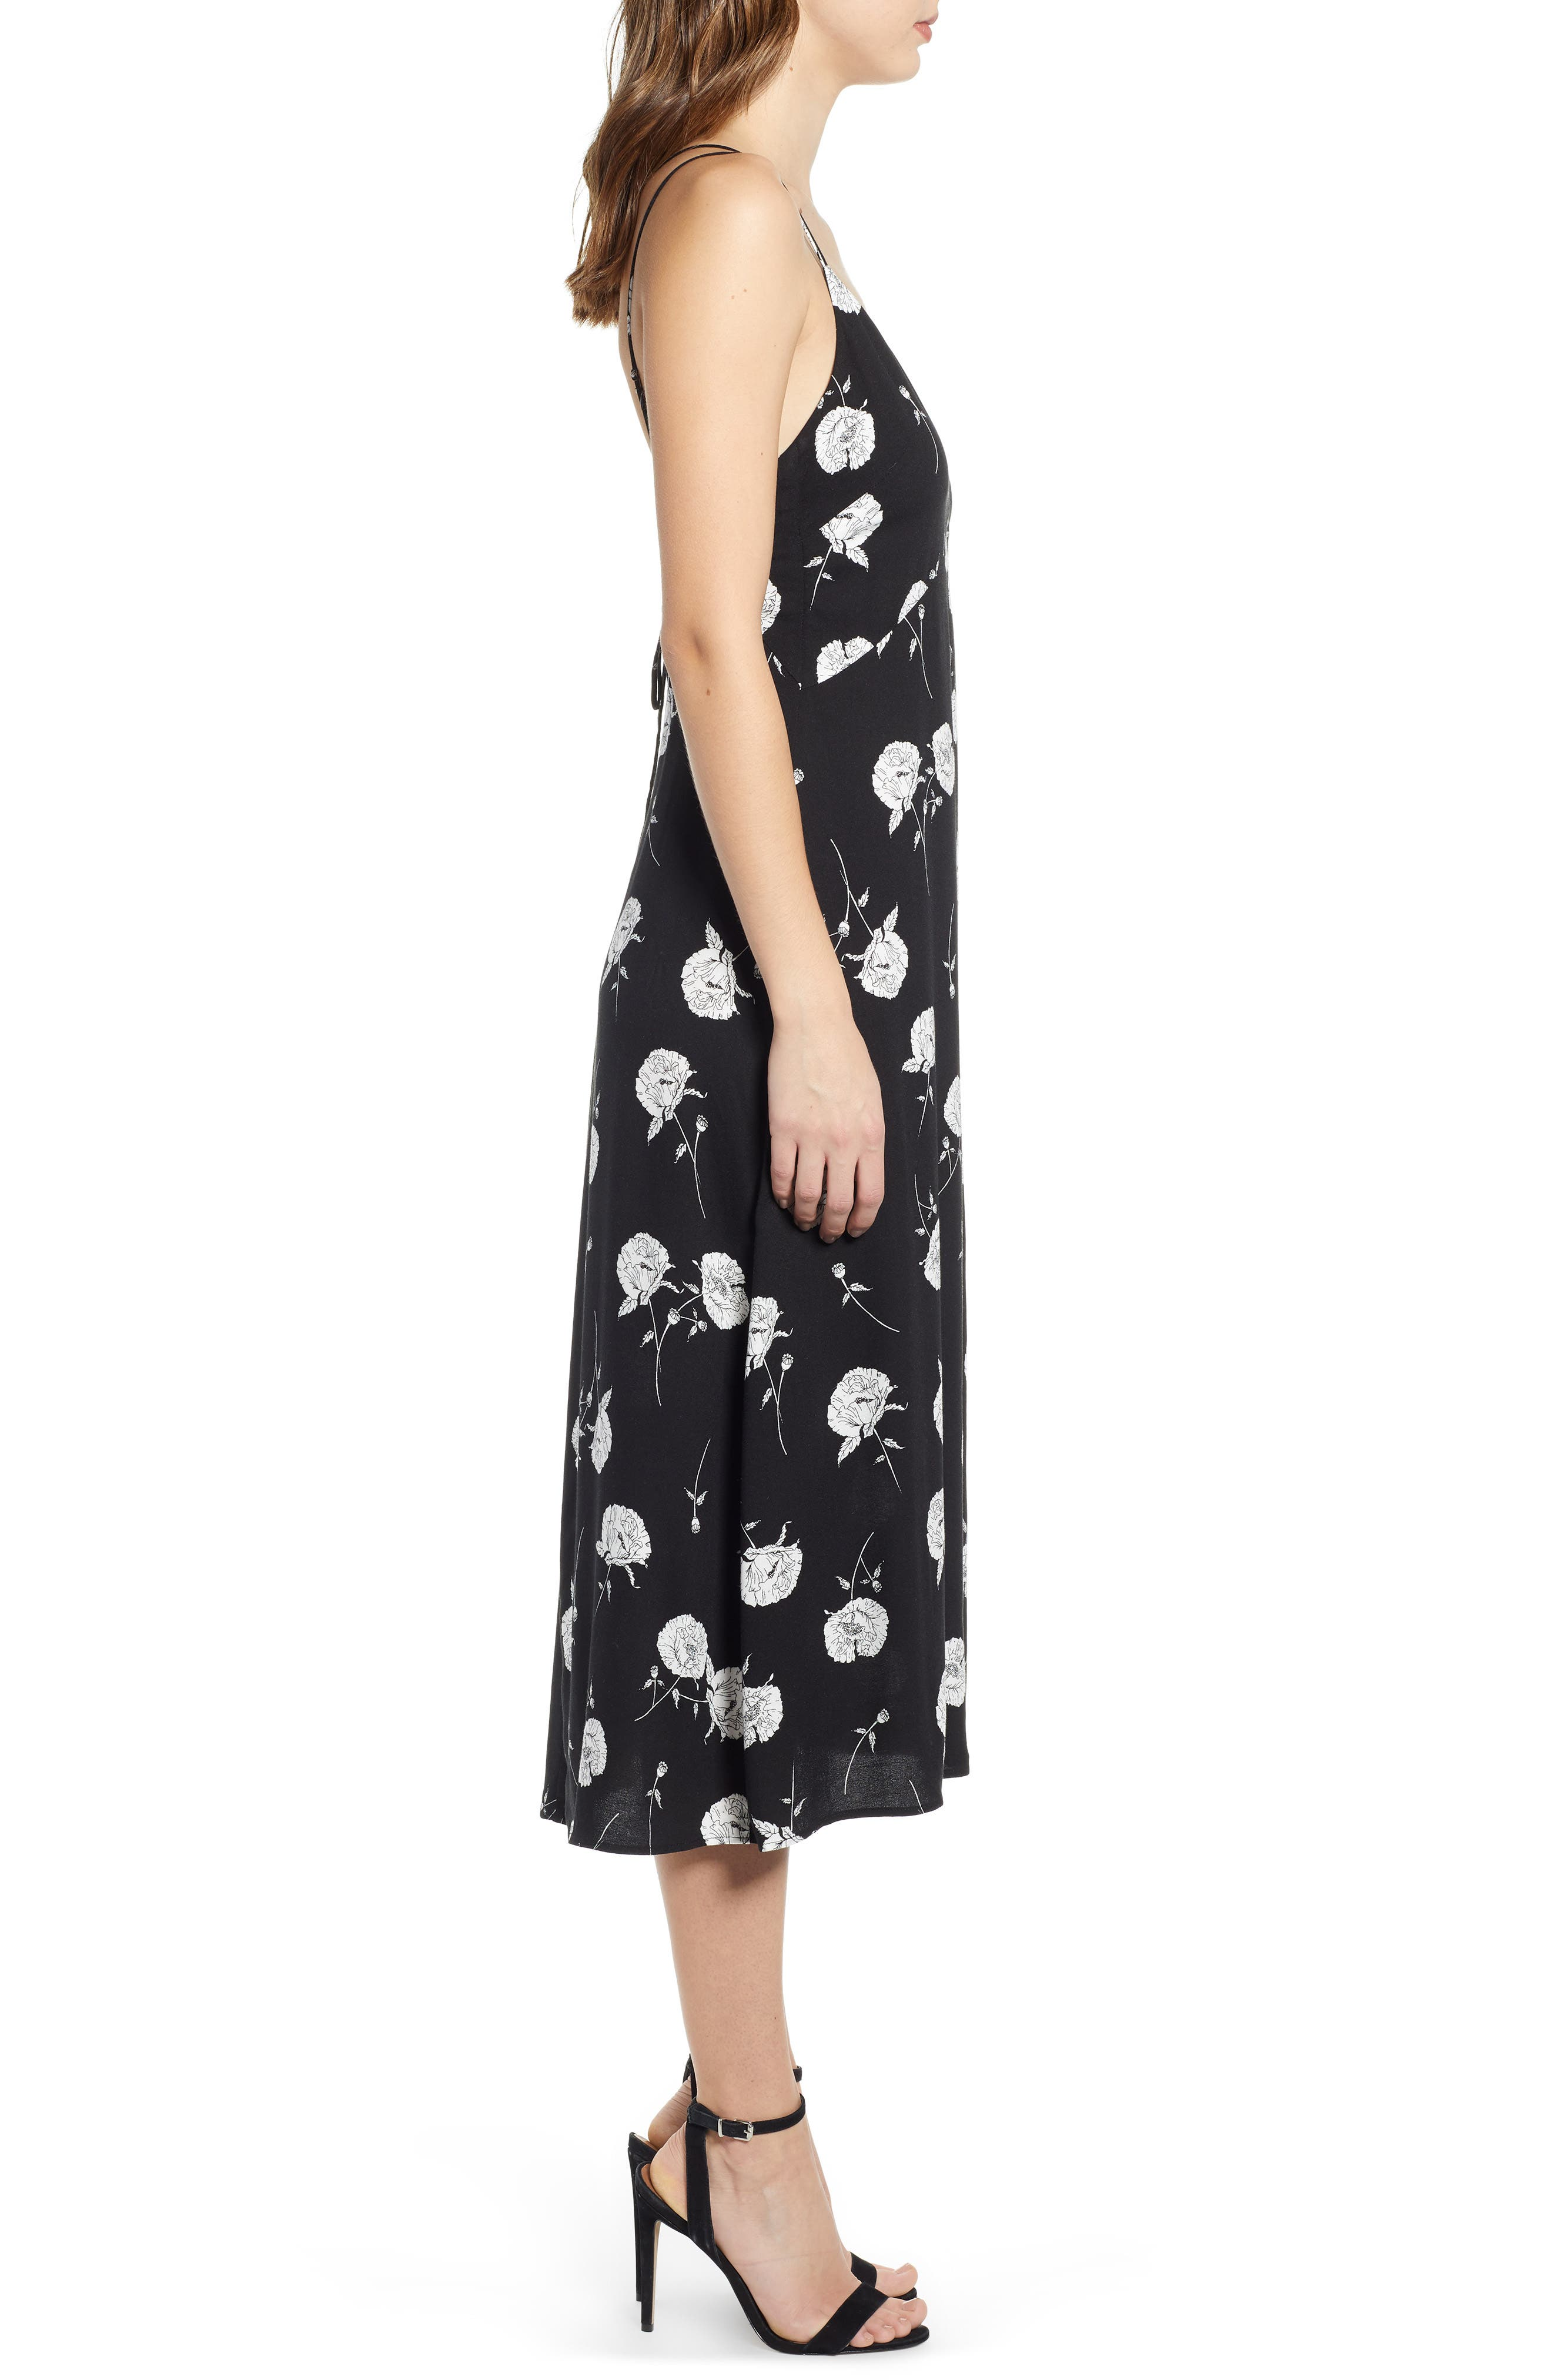 LEITH, Floral Strappy Midi Dress, Alternate thumbnail 4, color, BLACK TWO FLORAL